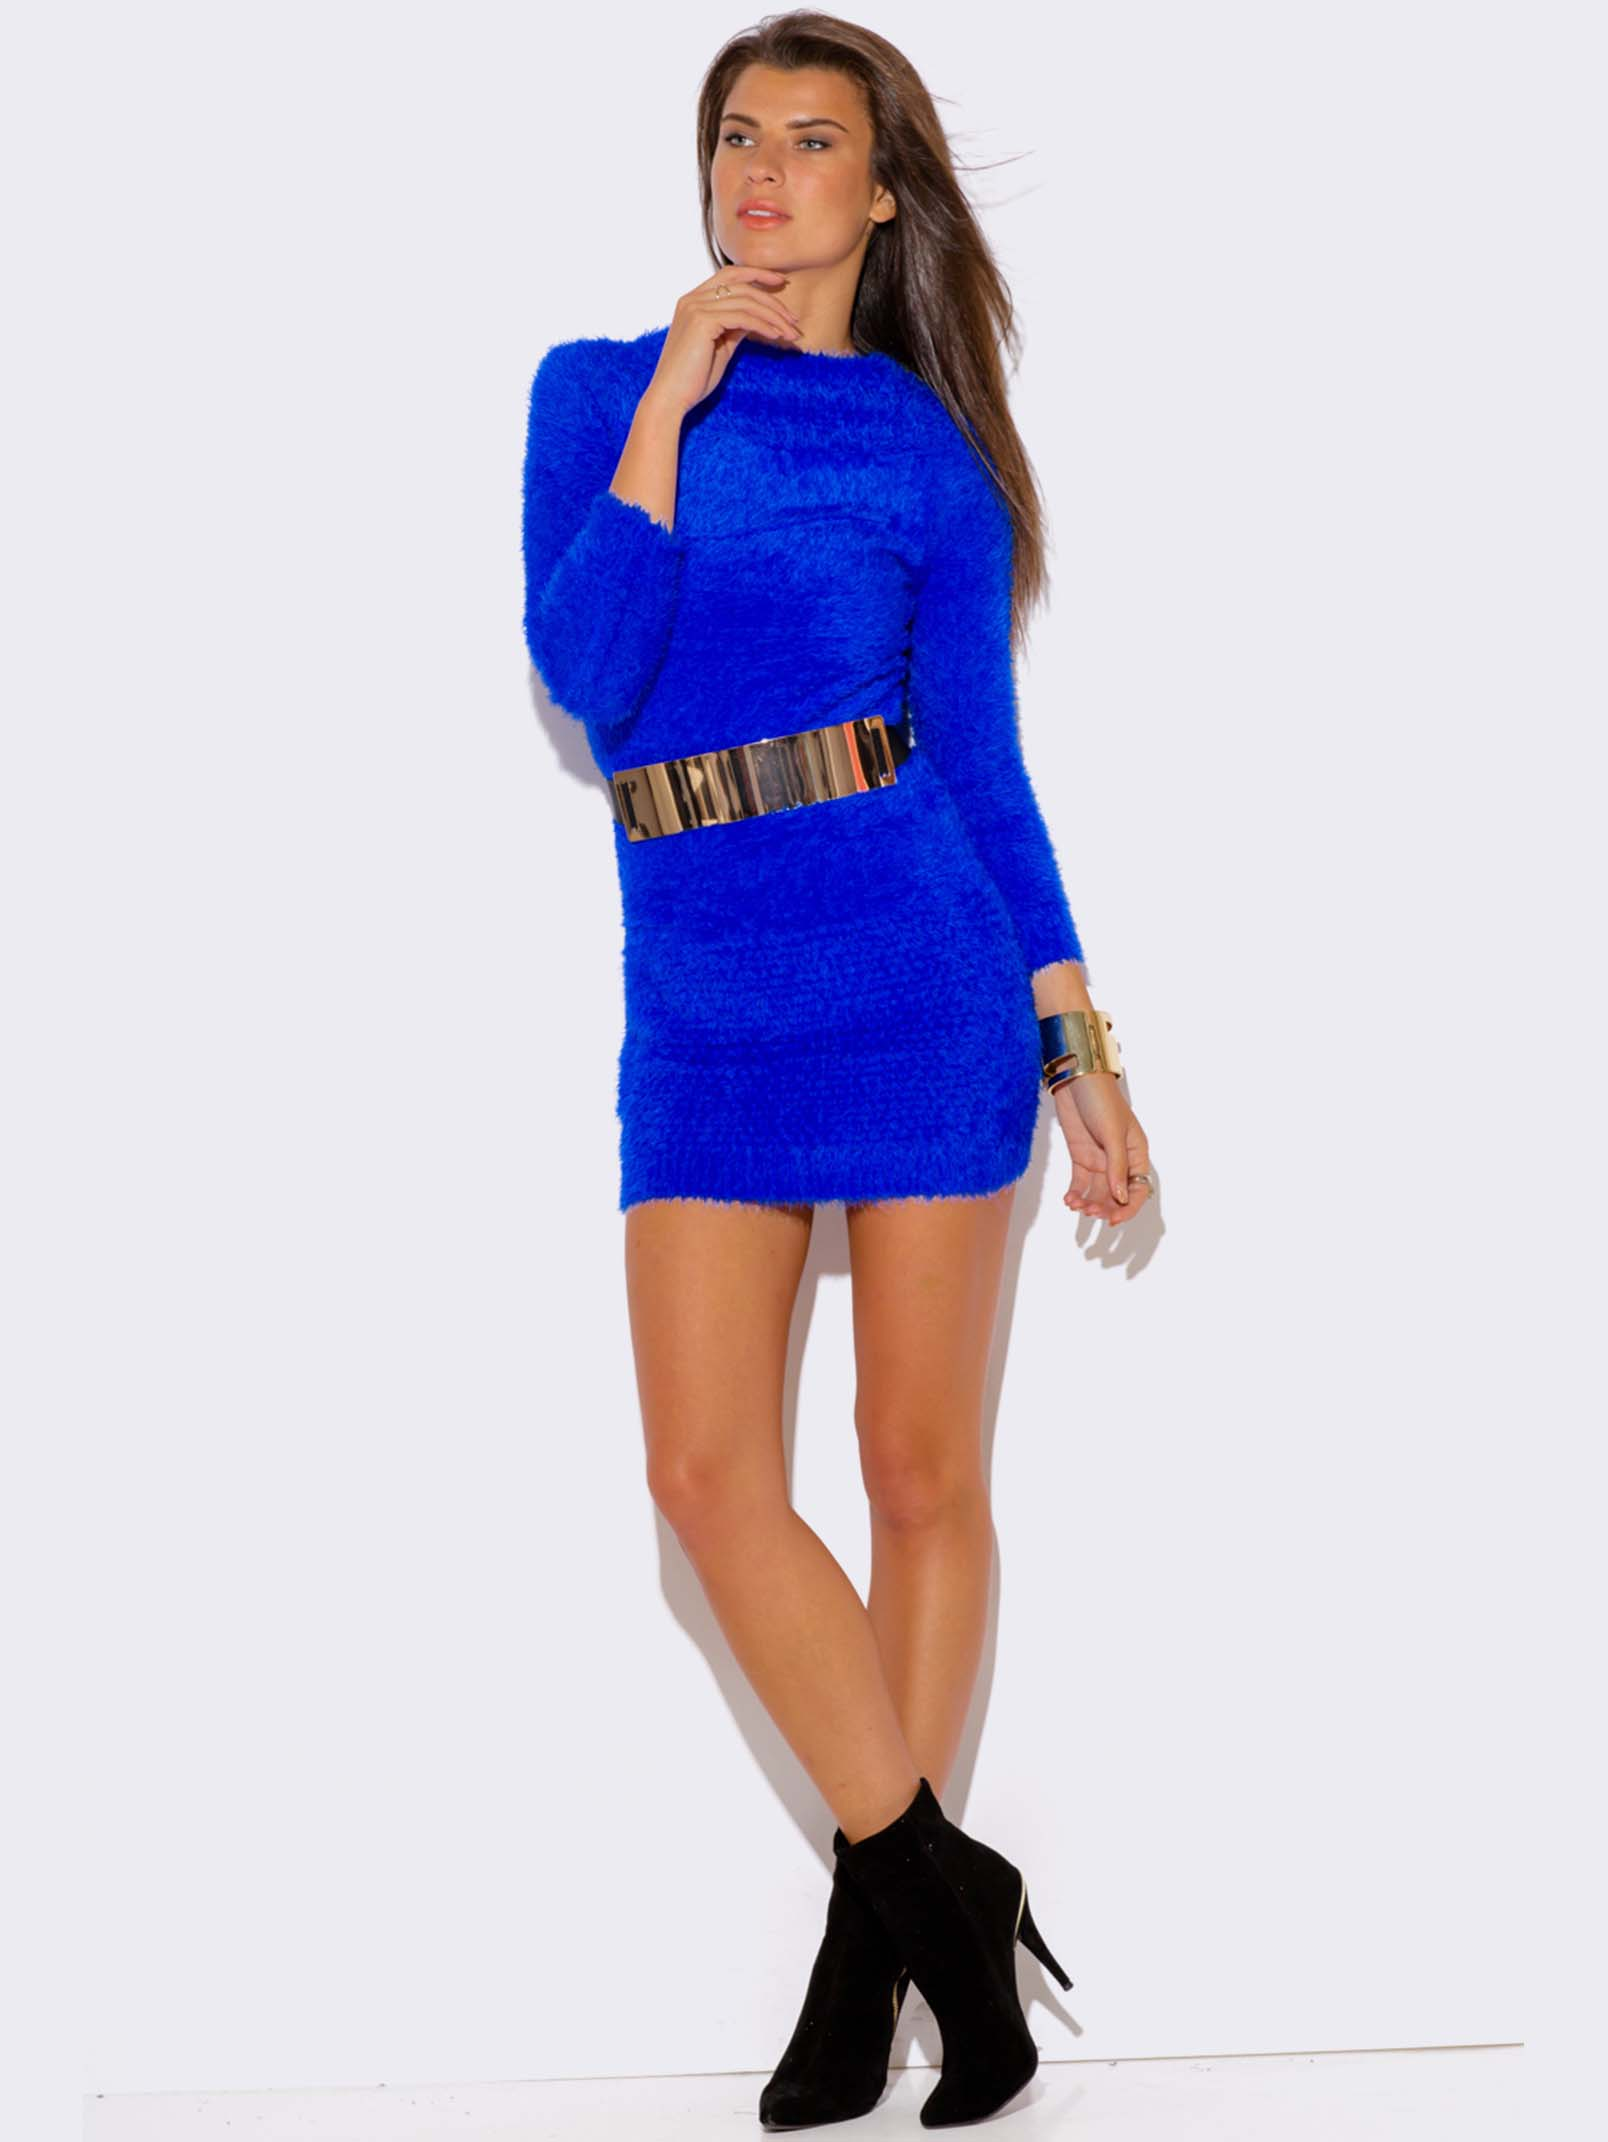 ROYAL BLUE FAUX FUR SWEATER DRESS - ModishOnline.com